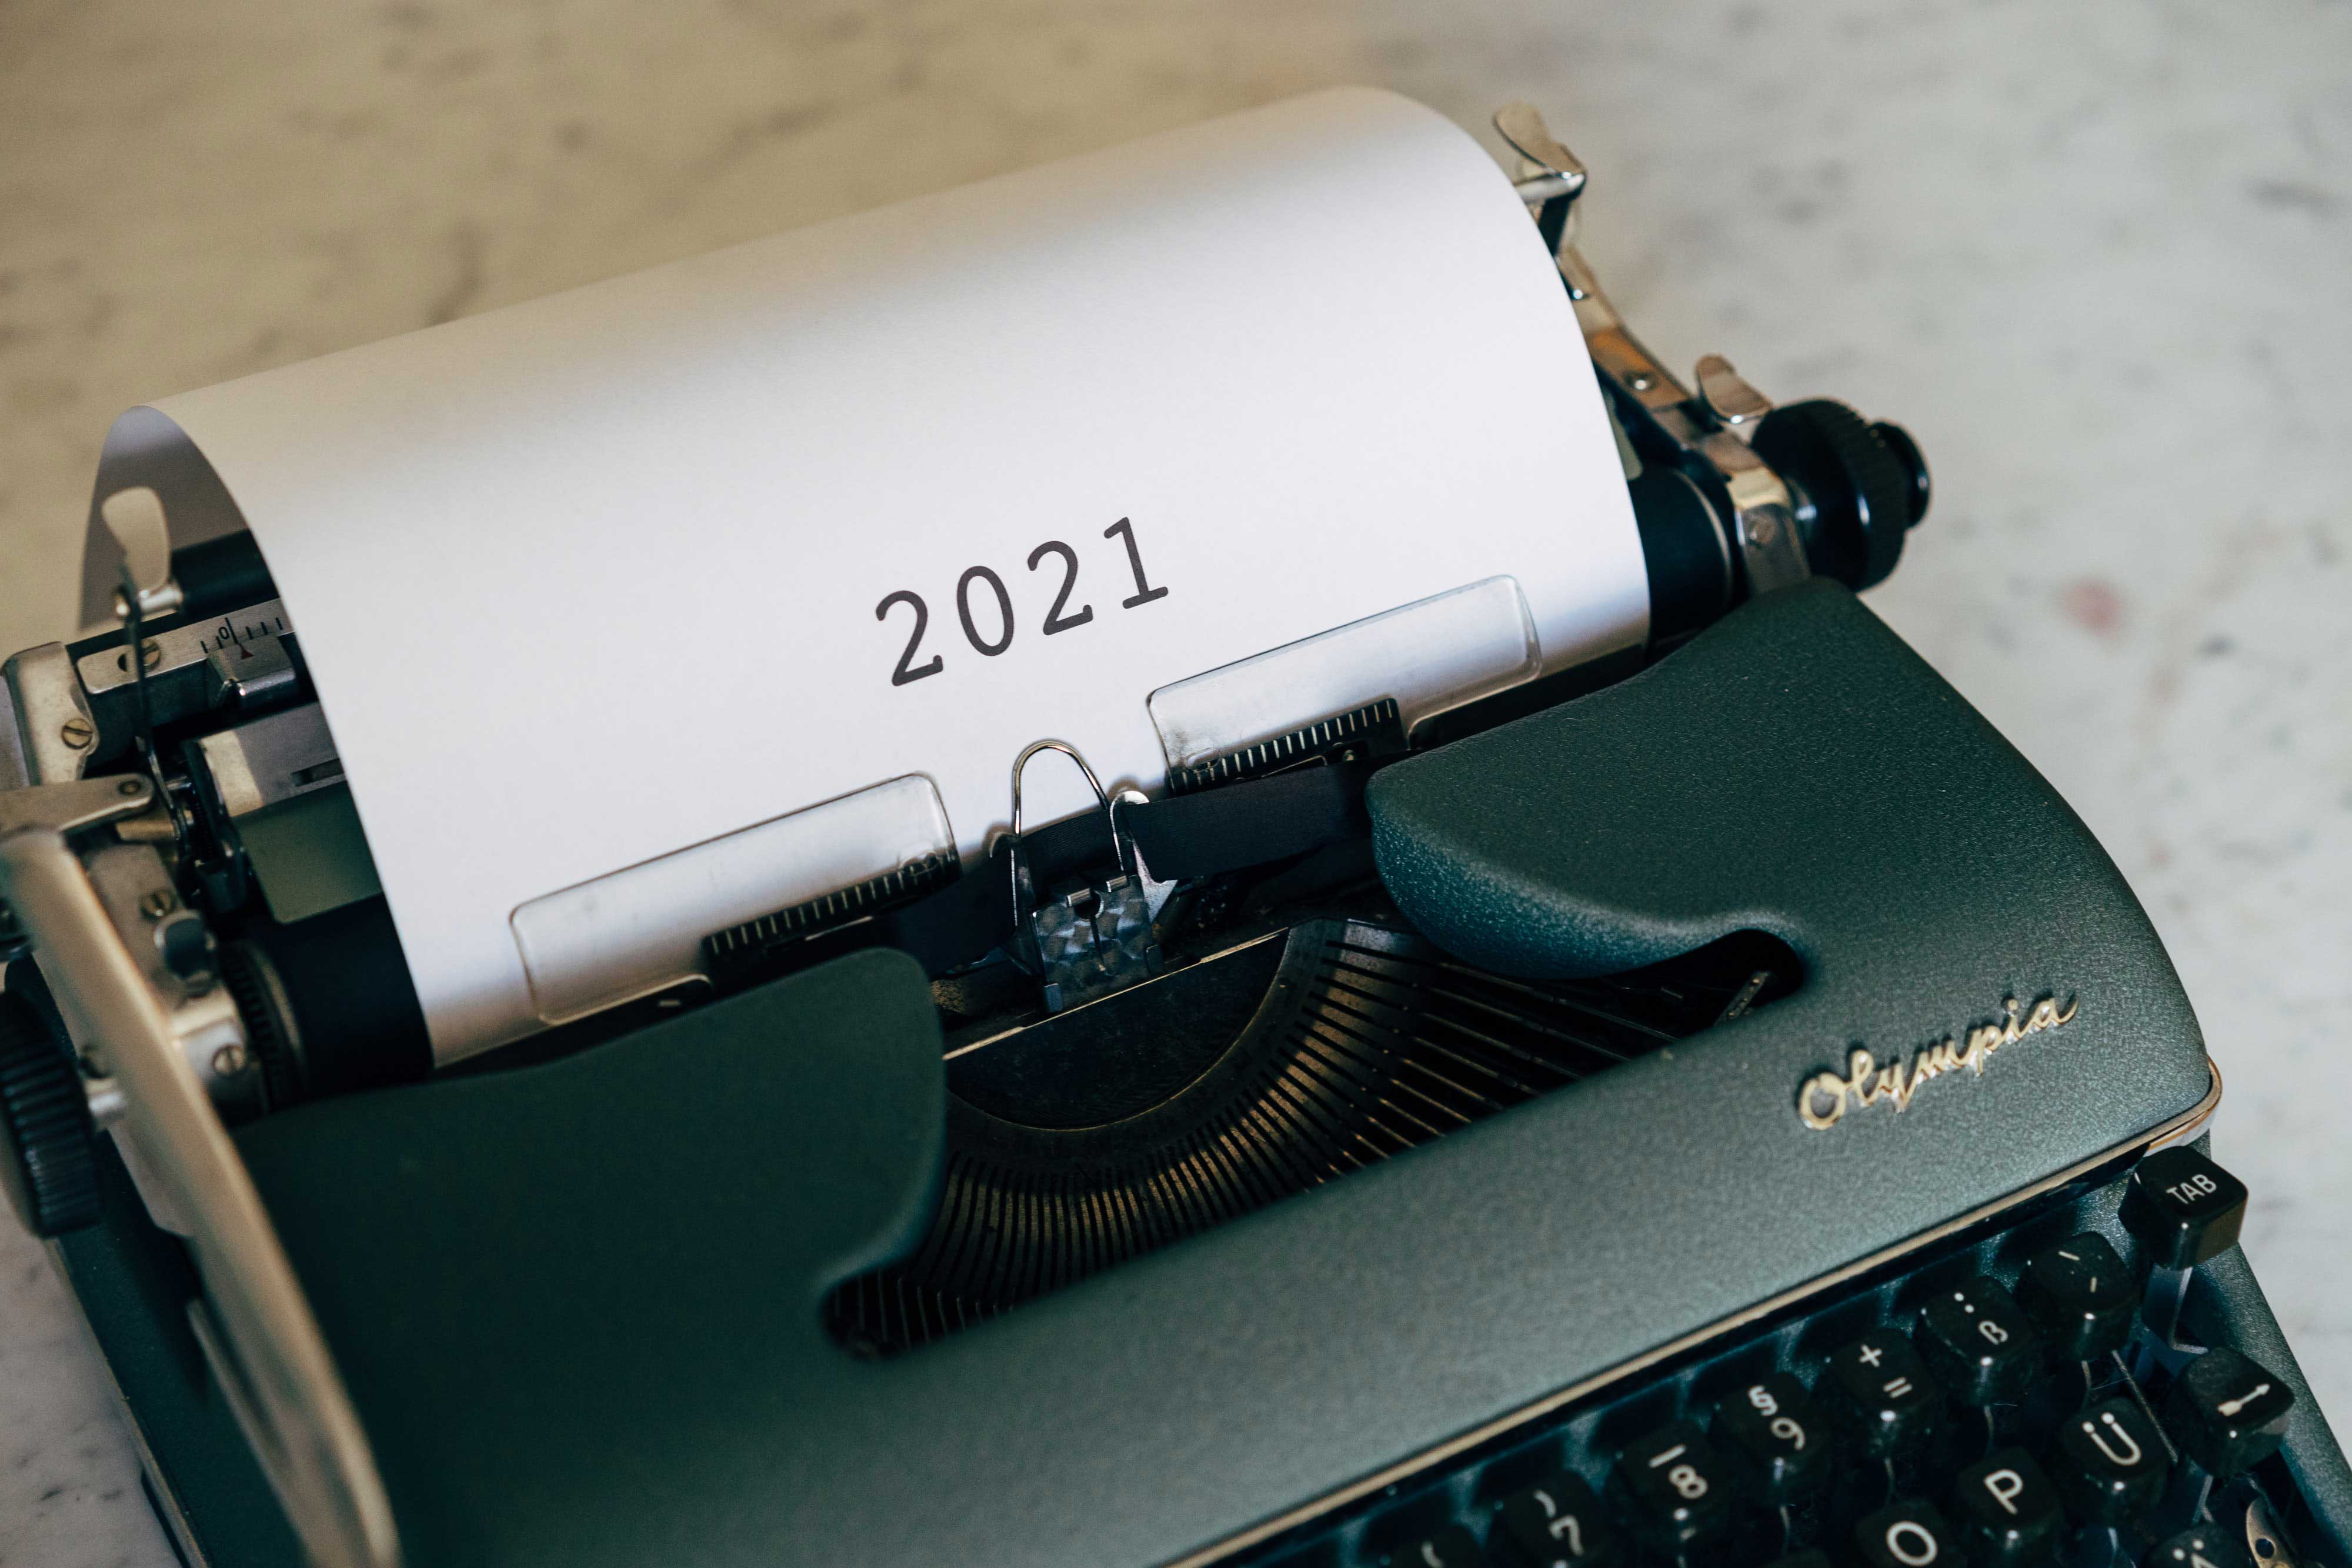 A type writer with 2021 written on paper